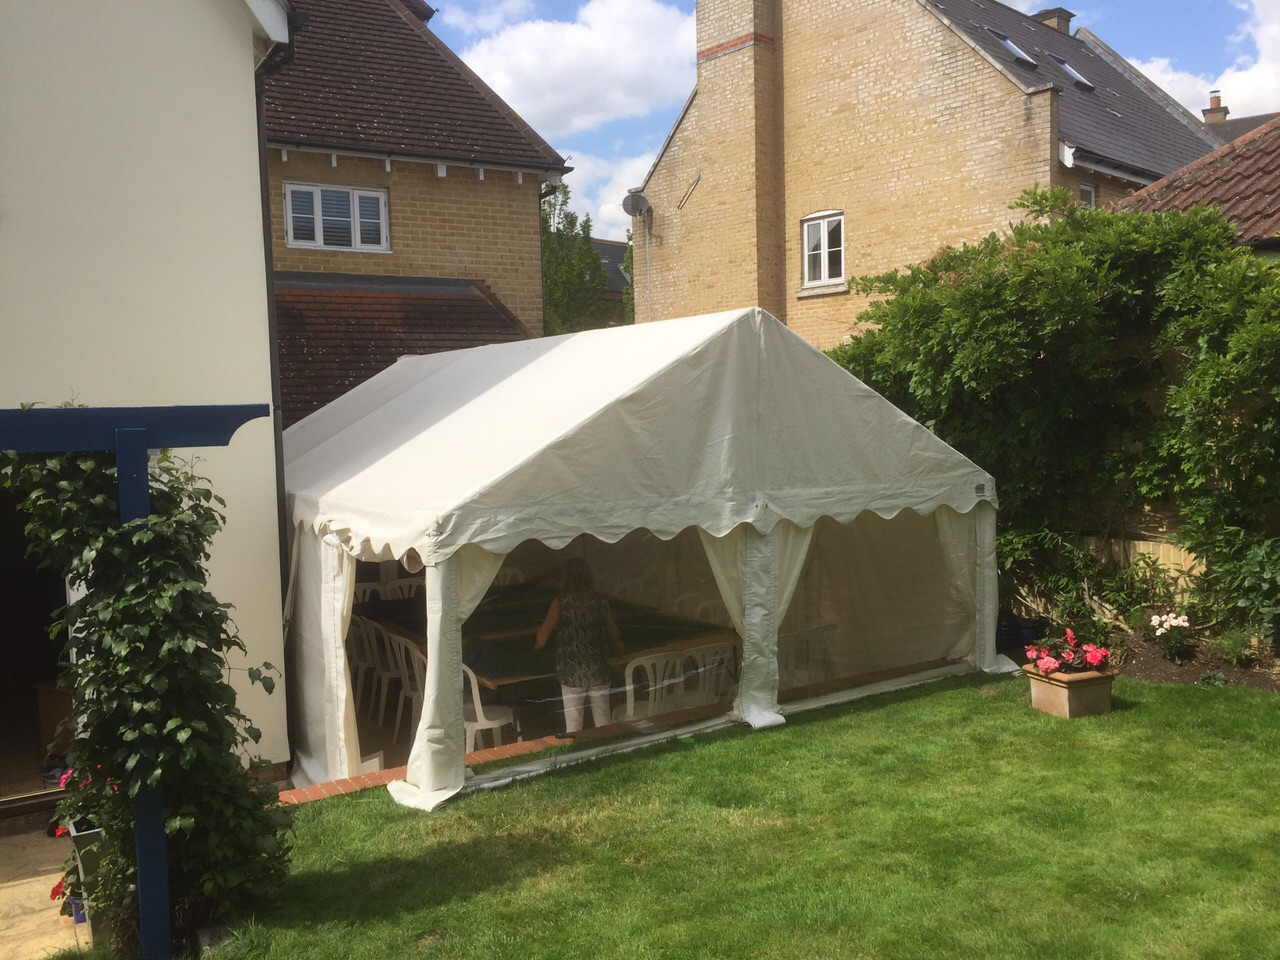 Marquee attached to house in Brentwood & Posh Garden Marquee Hire Author at Posh Garden Marquee Hire